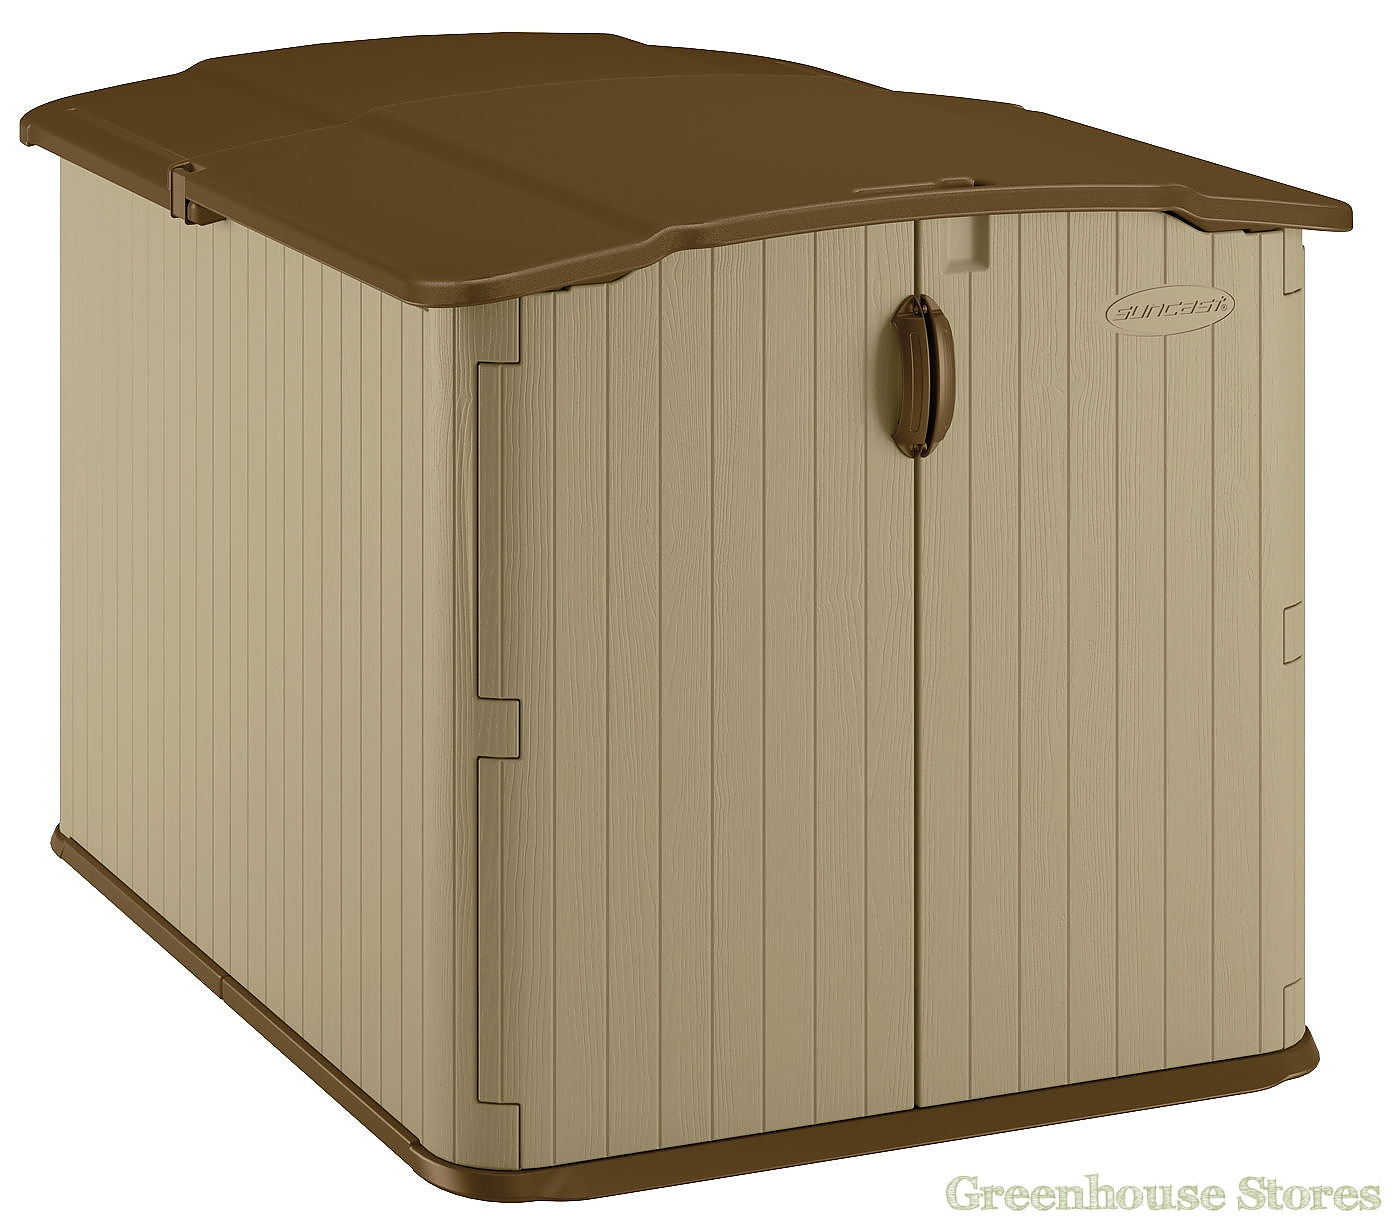 Sheds Ottors Storage shed 20 x 20 cushions for adirondack